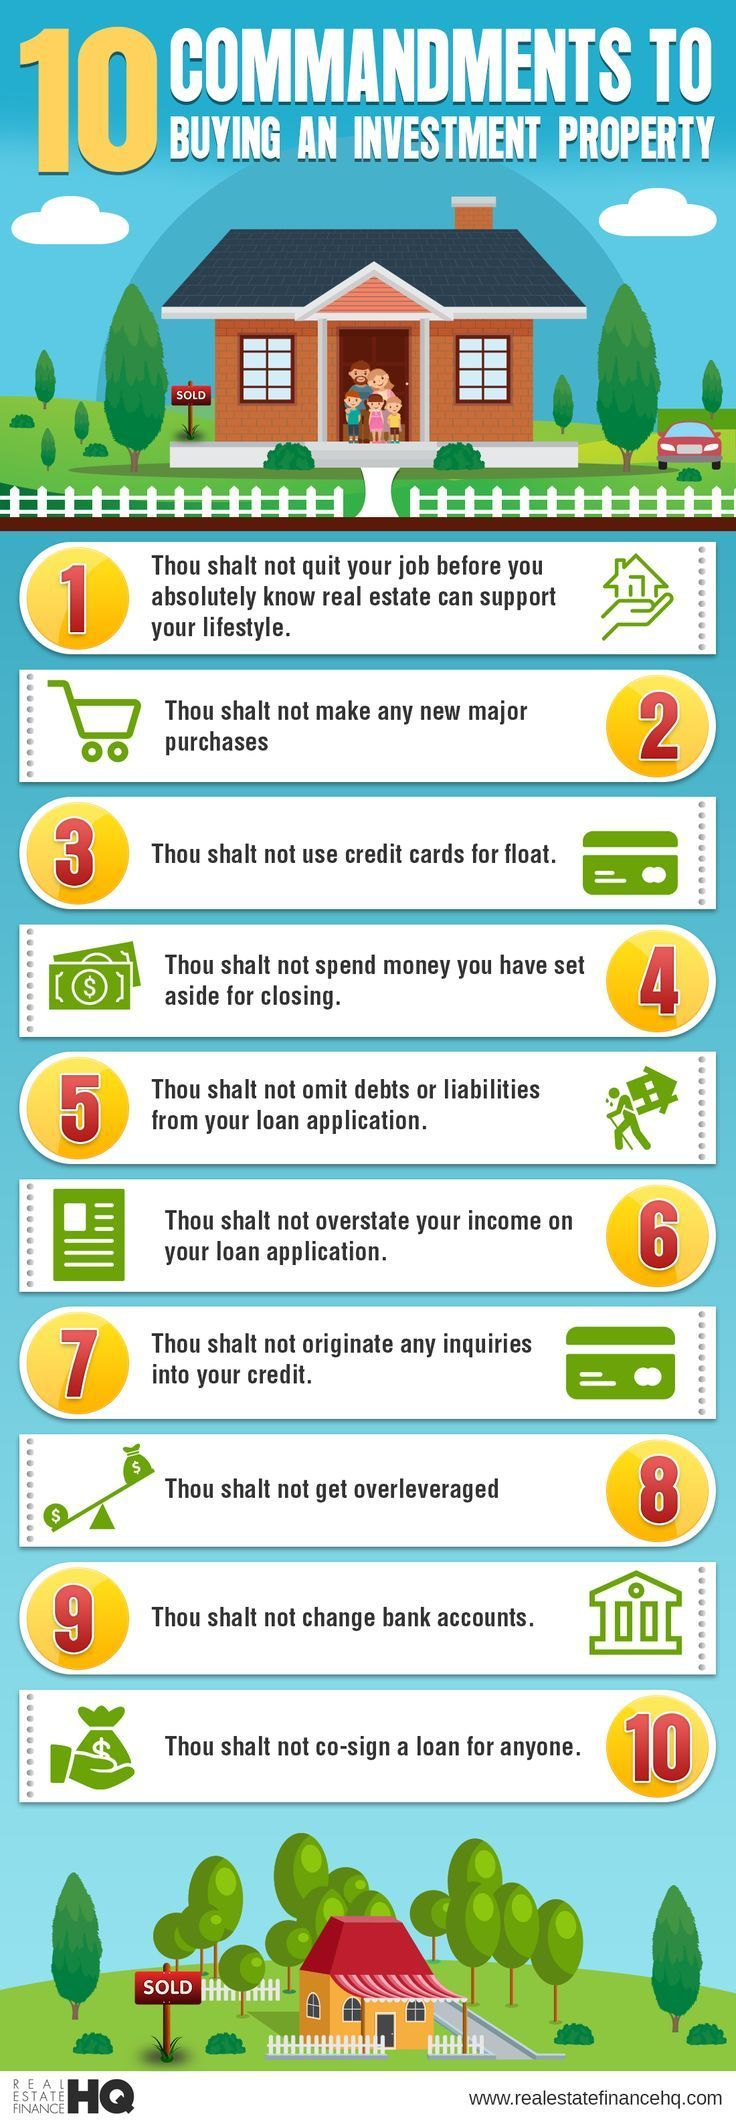 10 Commandments To Buying An Investment Property Infographic #realestate #infographic #real estate